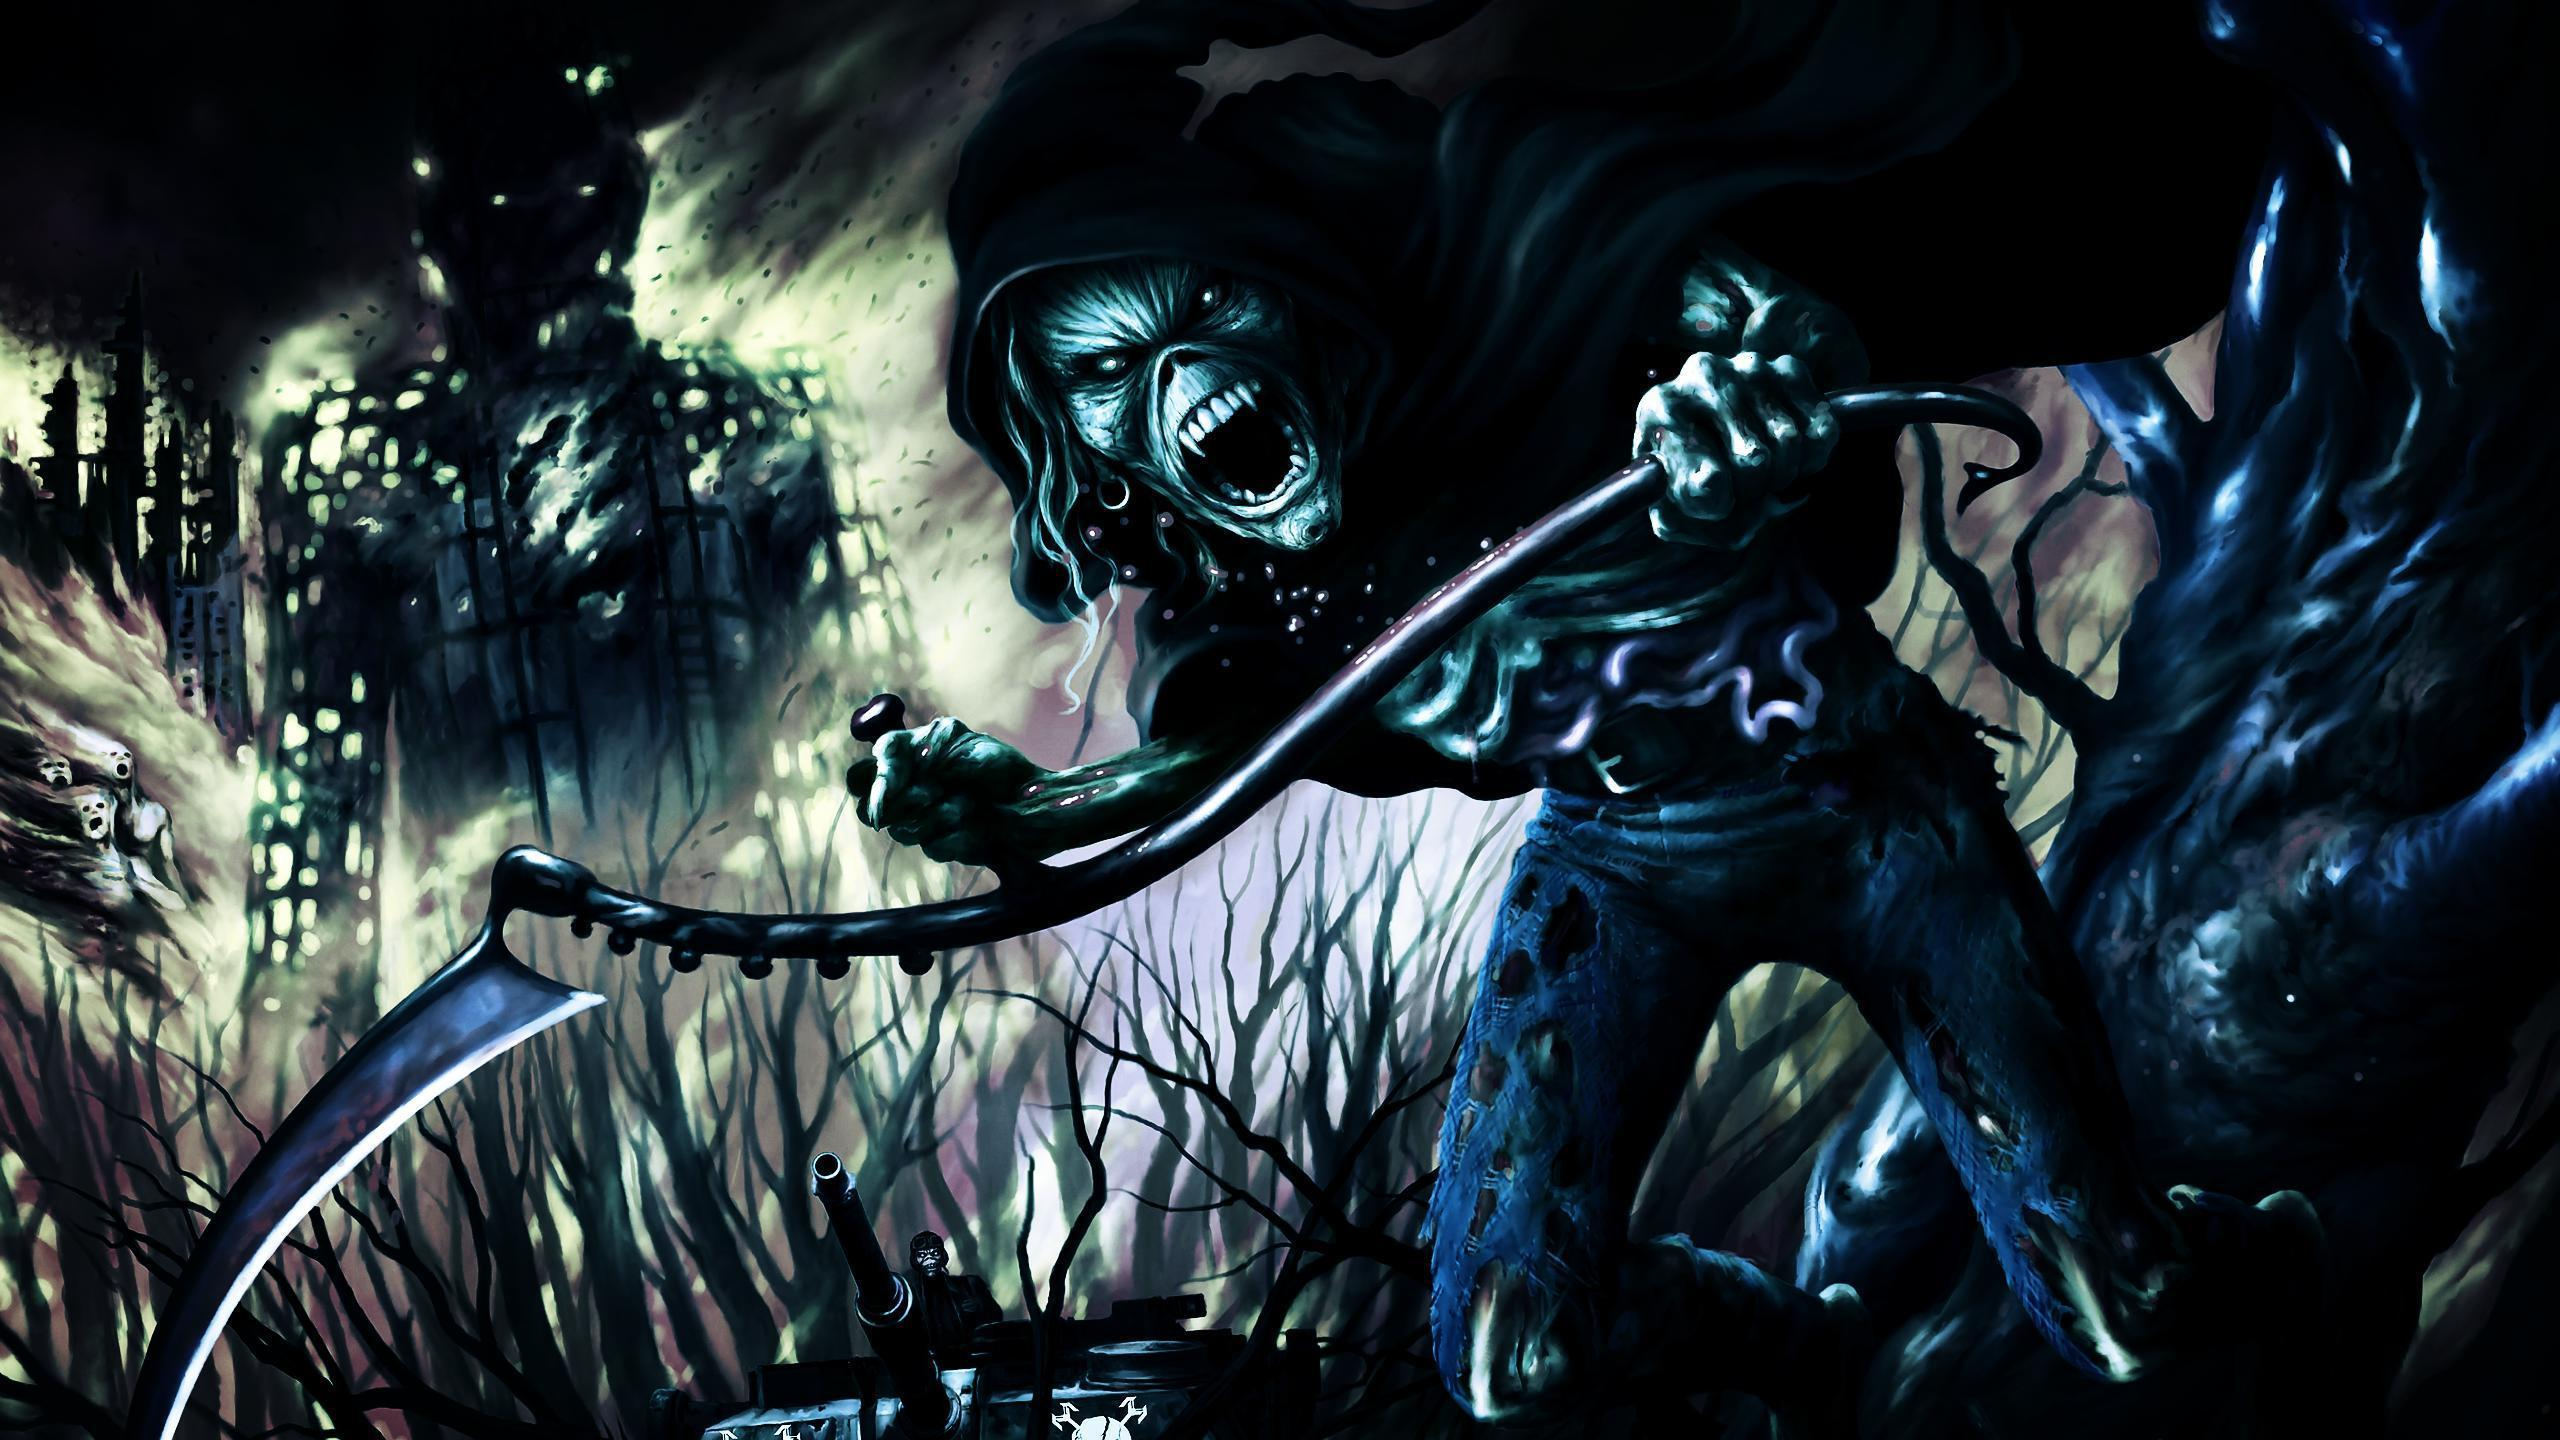 iron maiden wallpapers covers - photo #21